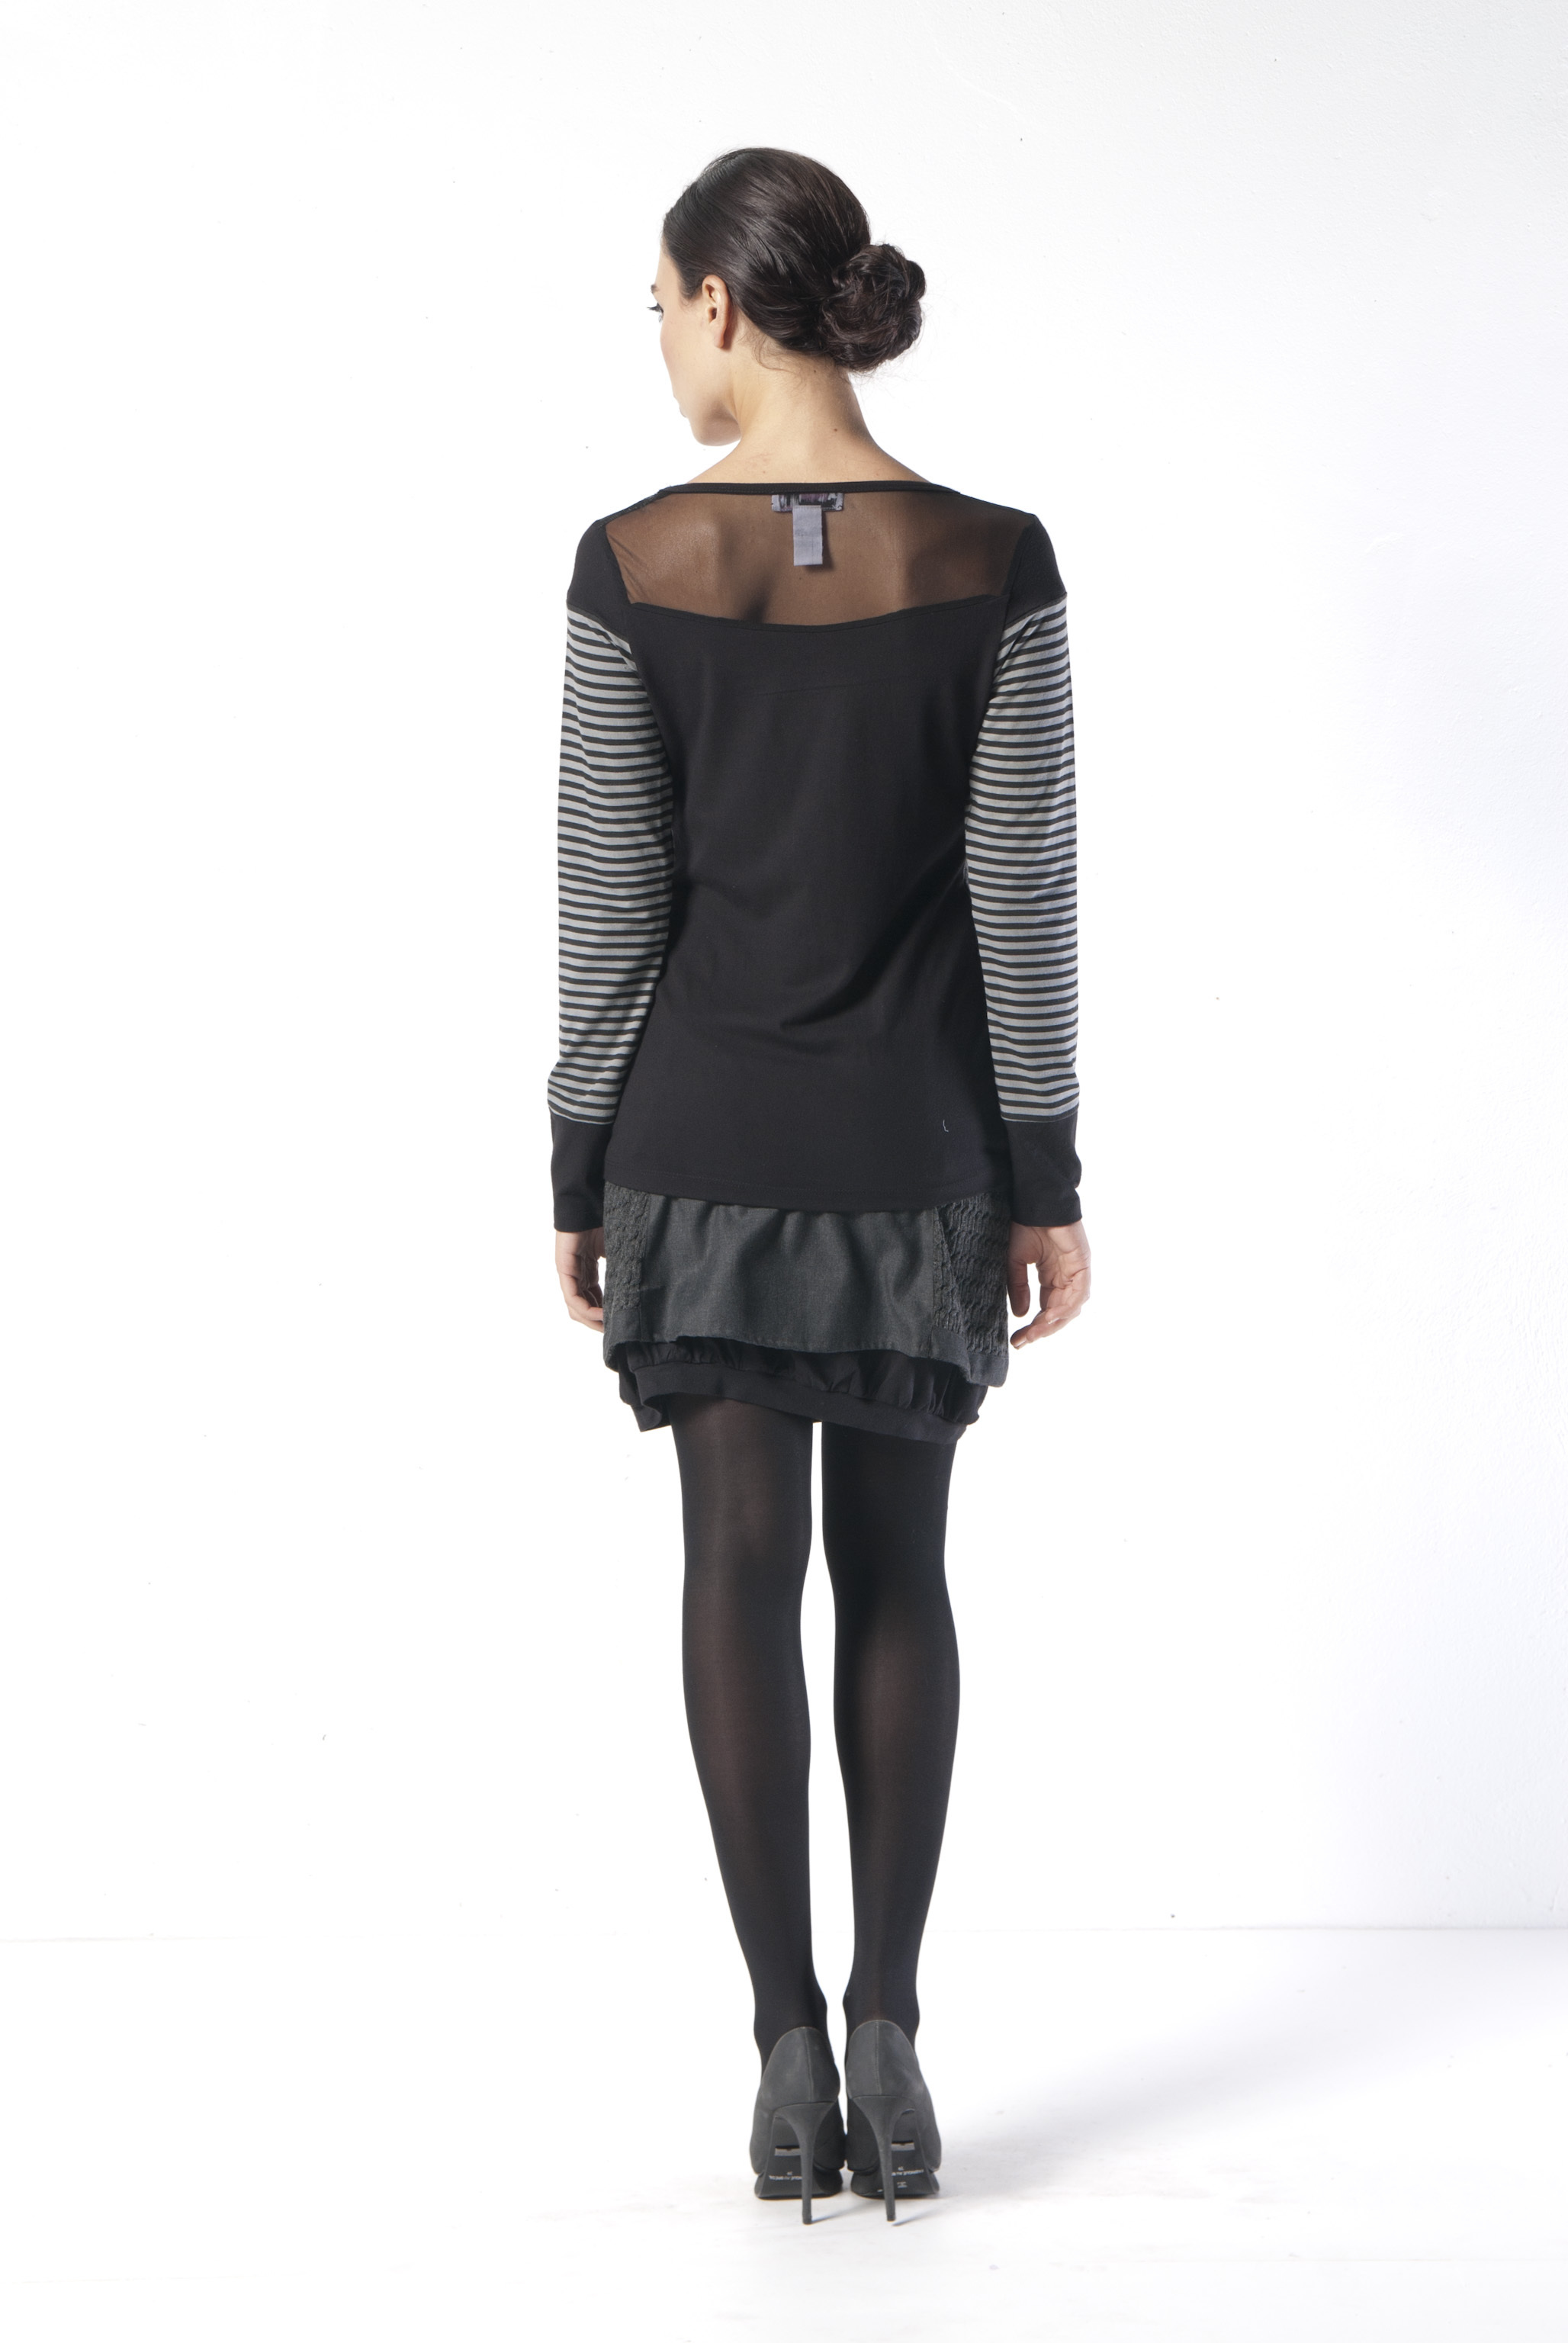 Les Fees Du Vent Couture: Color Intrigue Sweater (Almost Gone!)